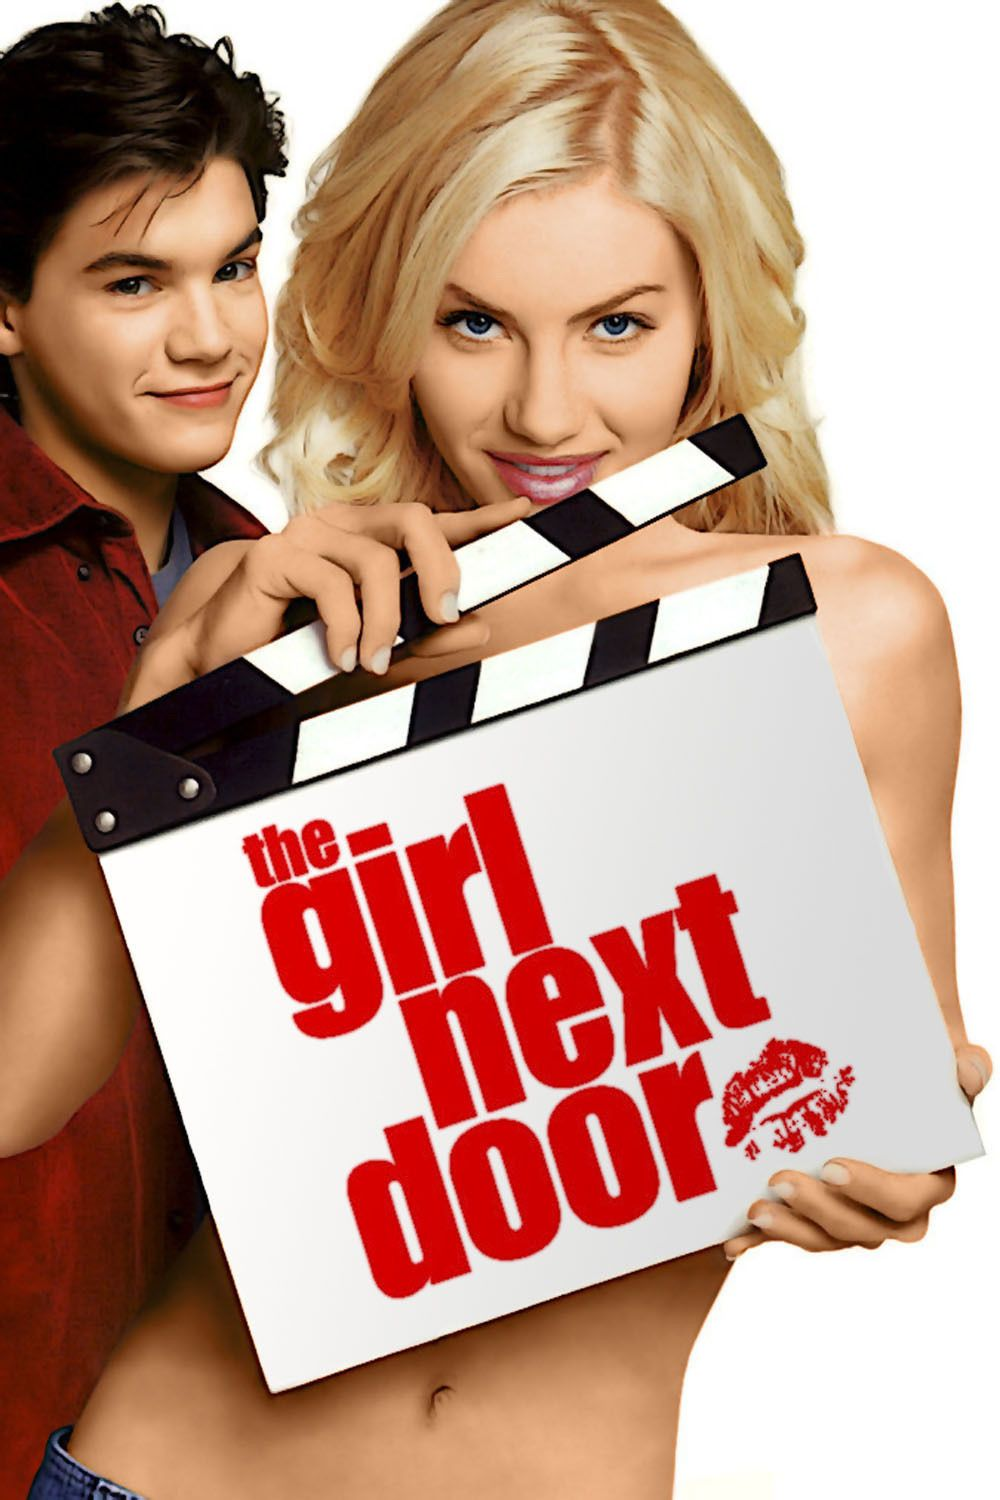 Watch girl next door free